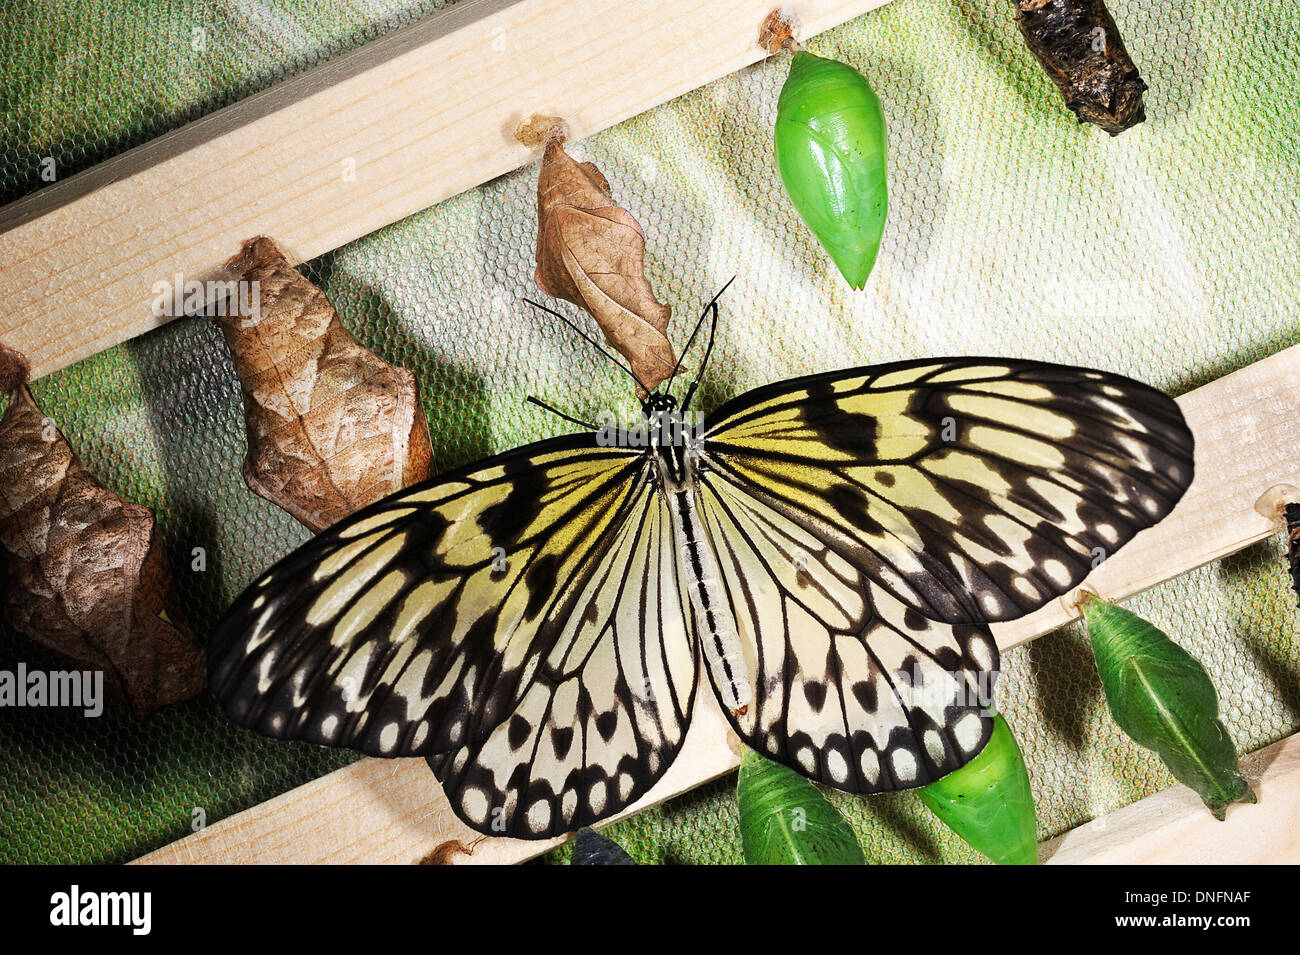 Paper Kite, Rice Paper, or Large Tree Nymphbutterfly (Idea leuconoe), Nymphalidae, Lepidoptera, Asia - Stock Image